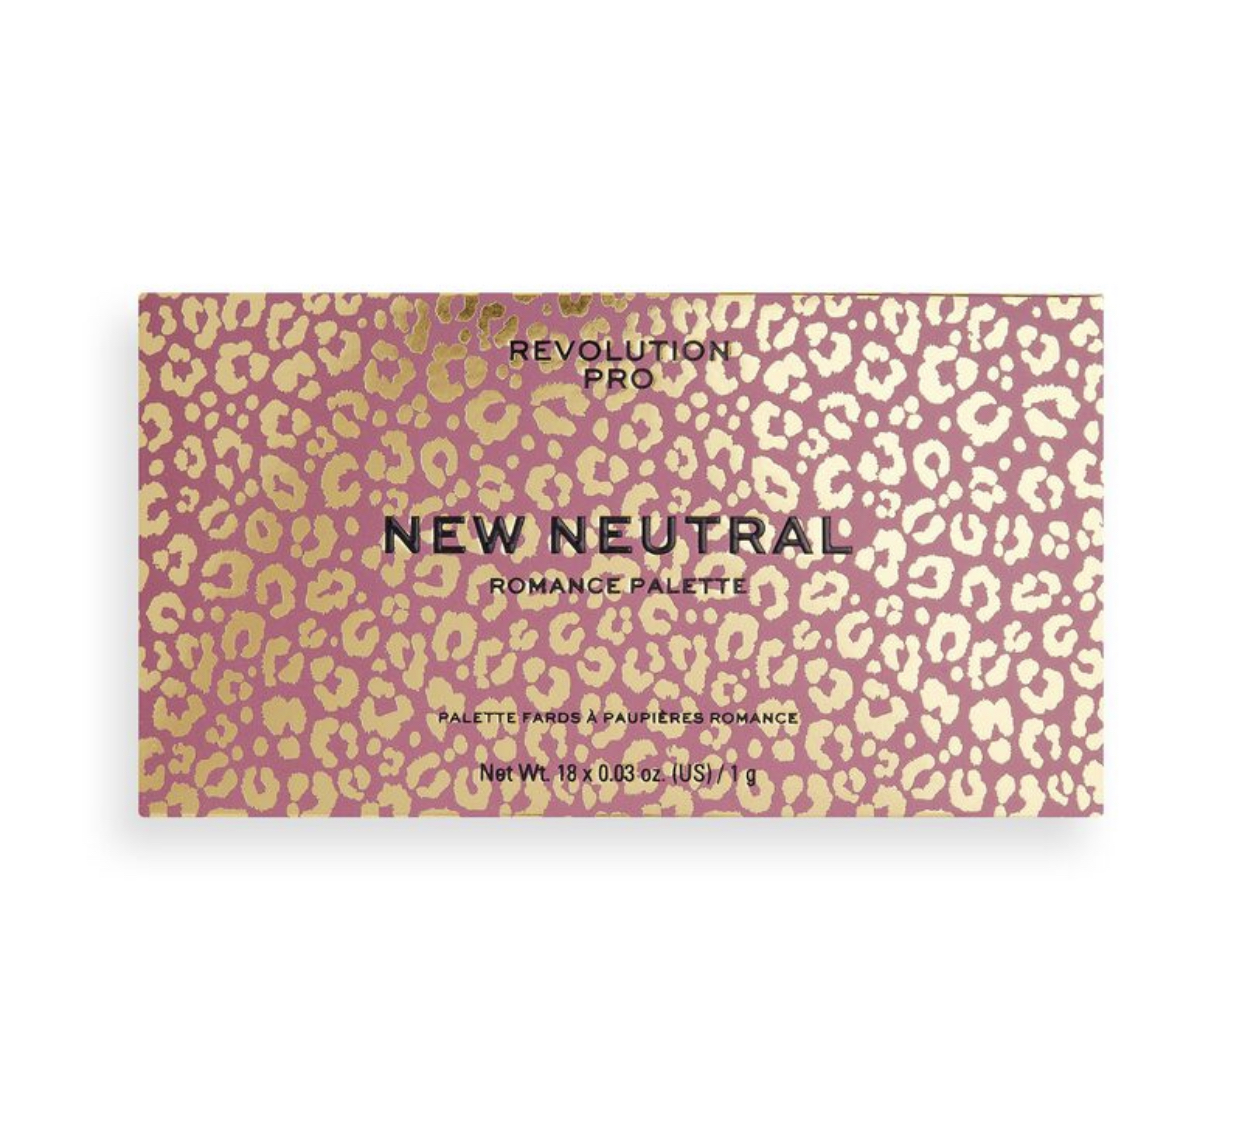 Revolution Pro Romance New Neutral Eyeshadow Palette